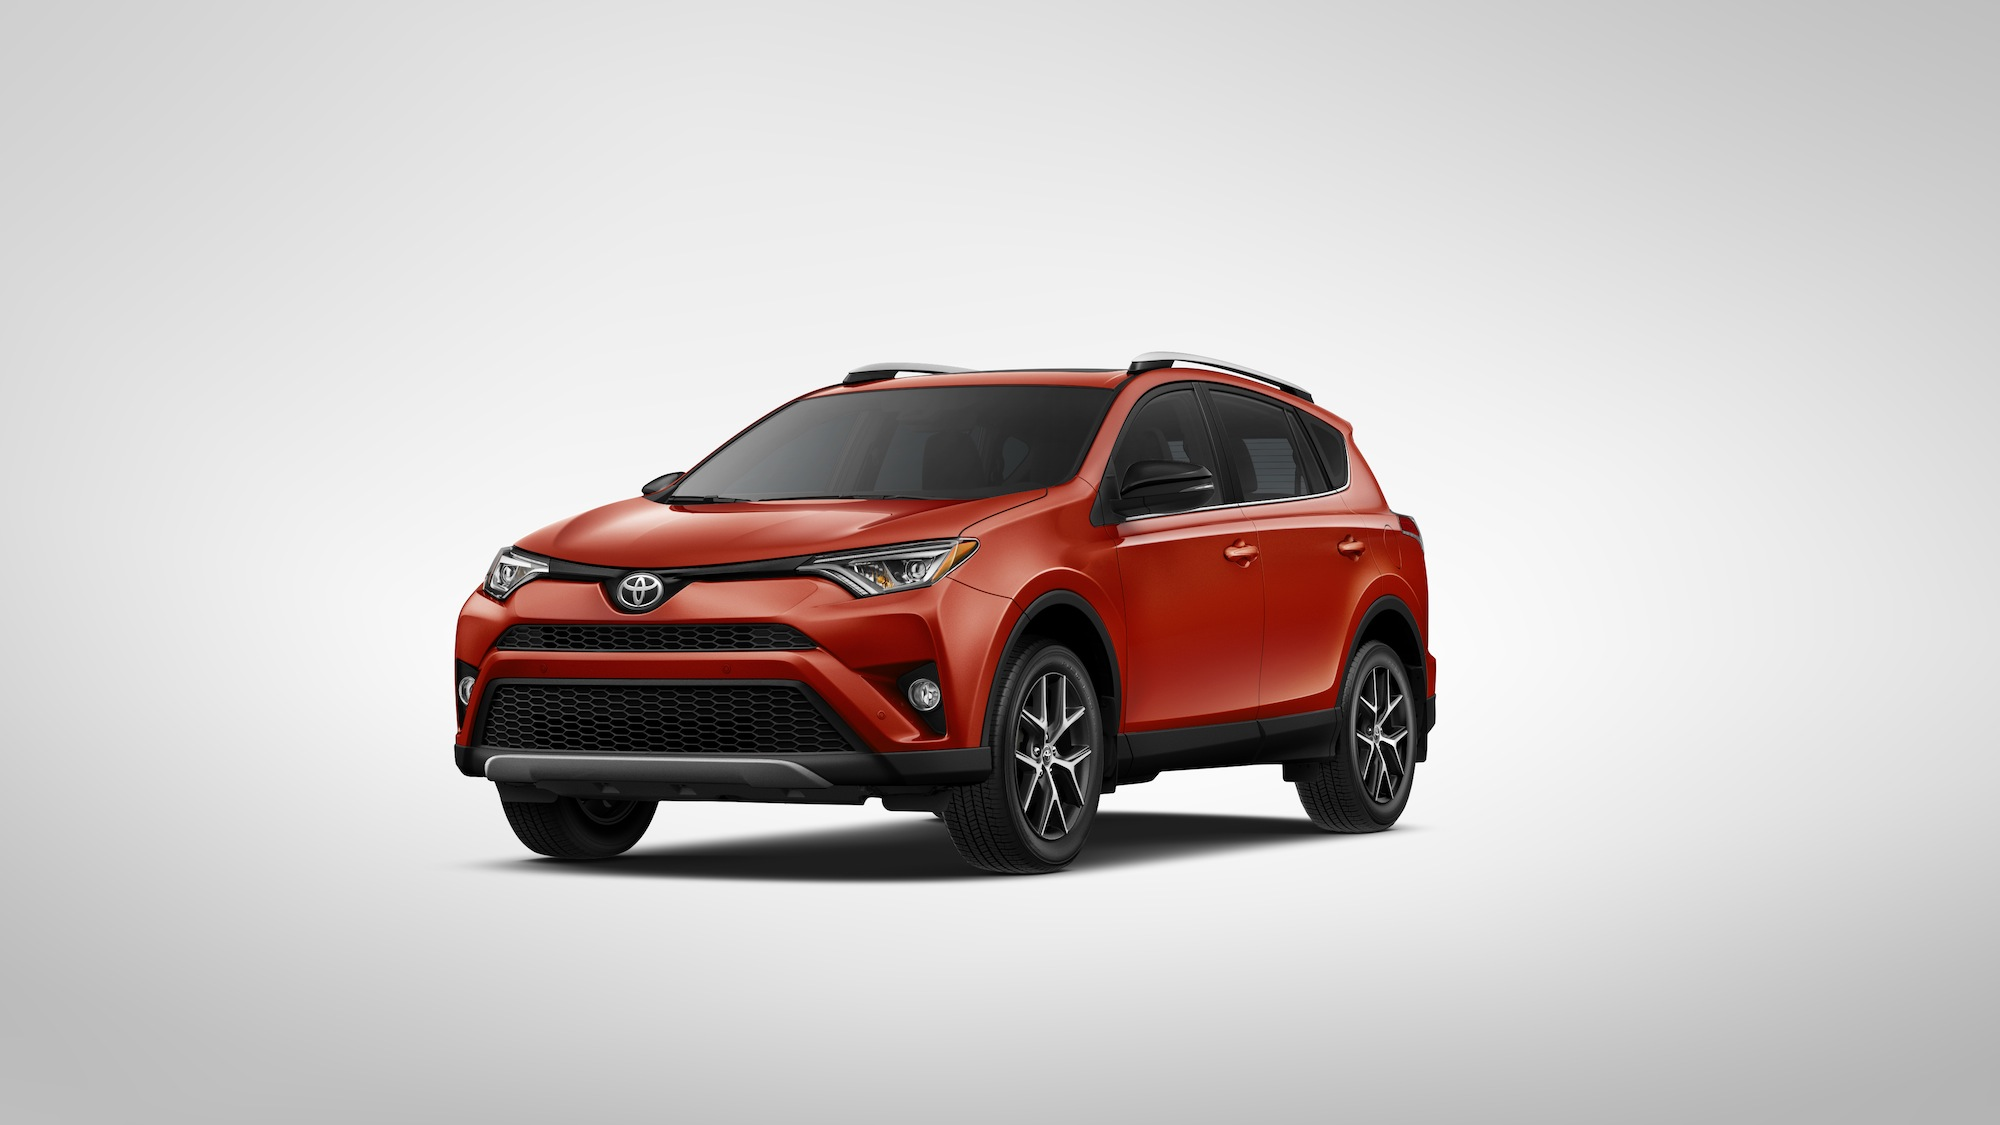 2016 toyota rav4 gets fresh style hybrid powertrain news. Black Bedroom Furniture Sets. Home Design Ideas